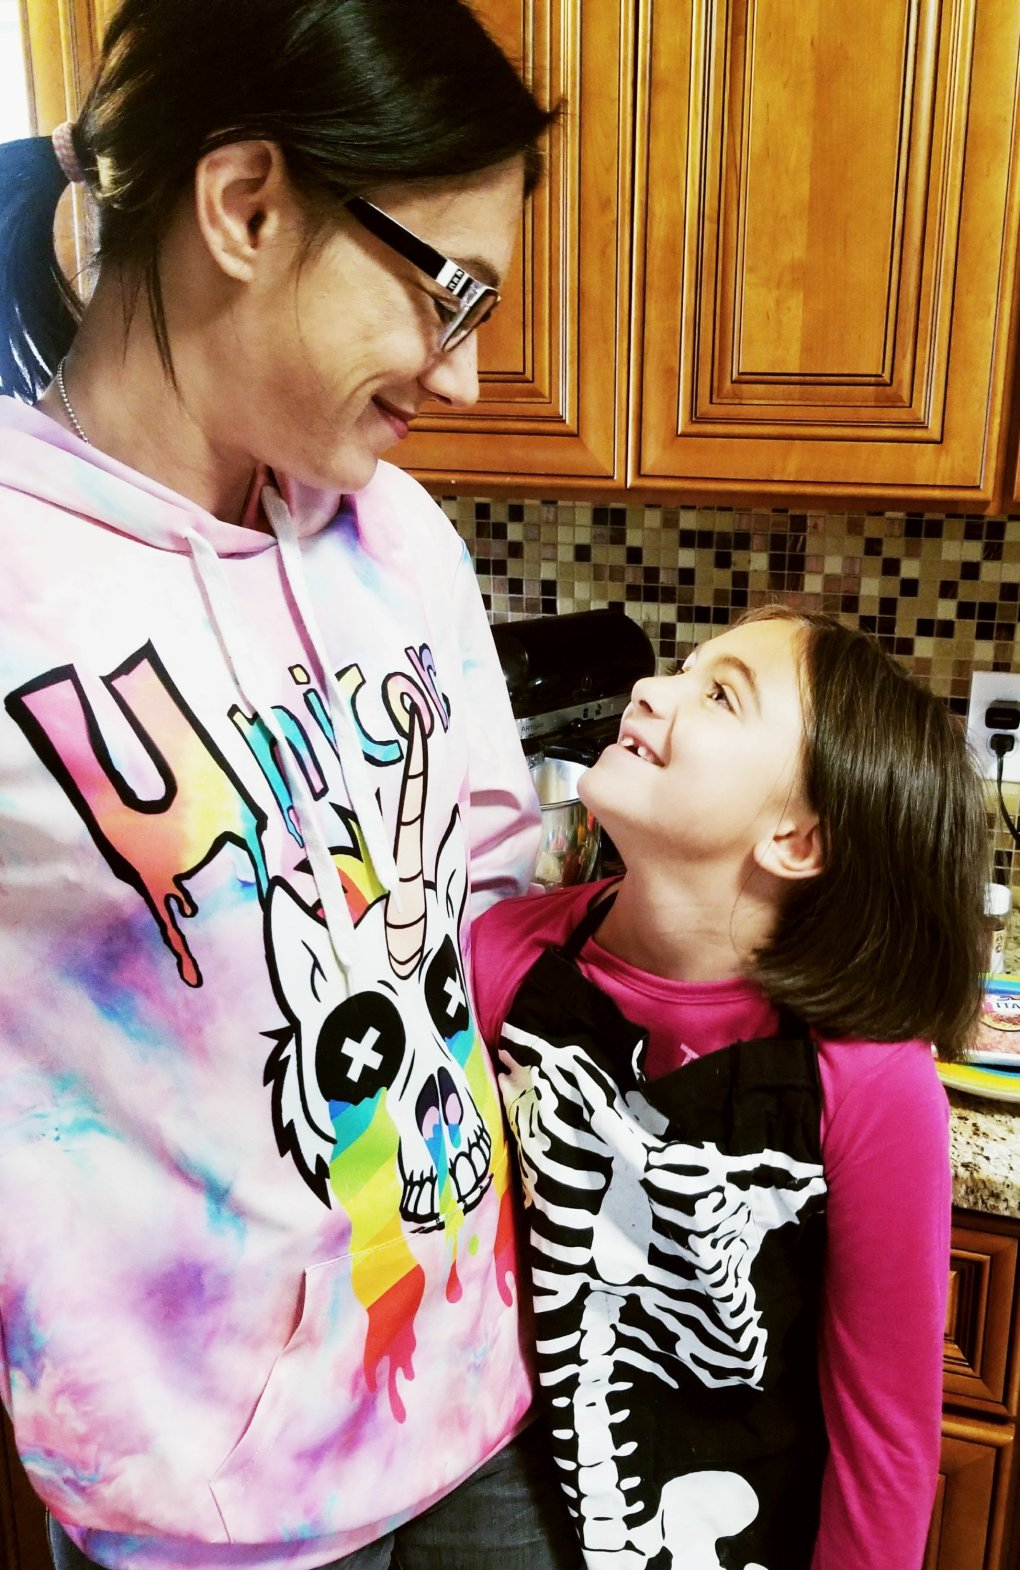 My daughter and I in the kitchen bonding while cooking